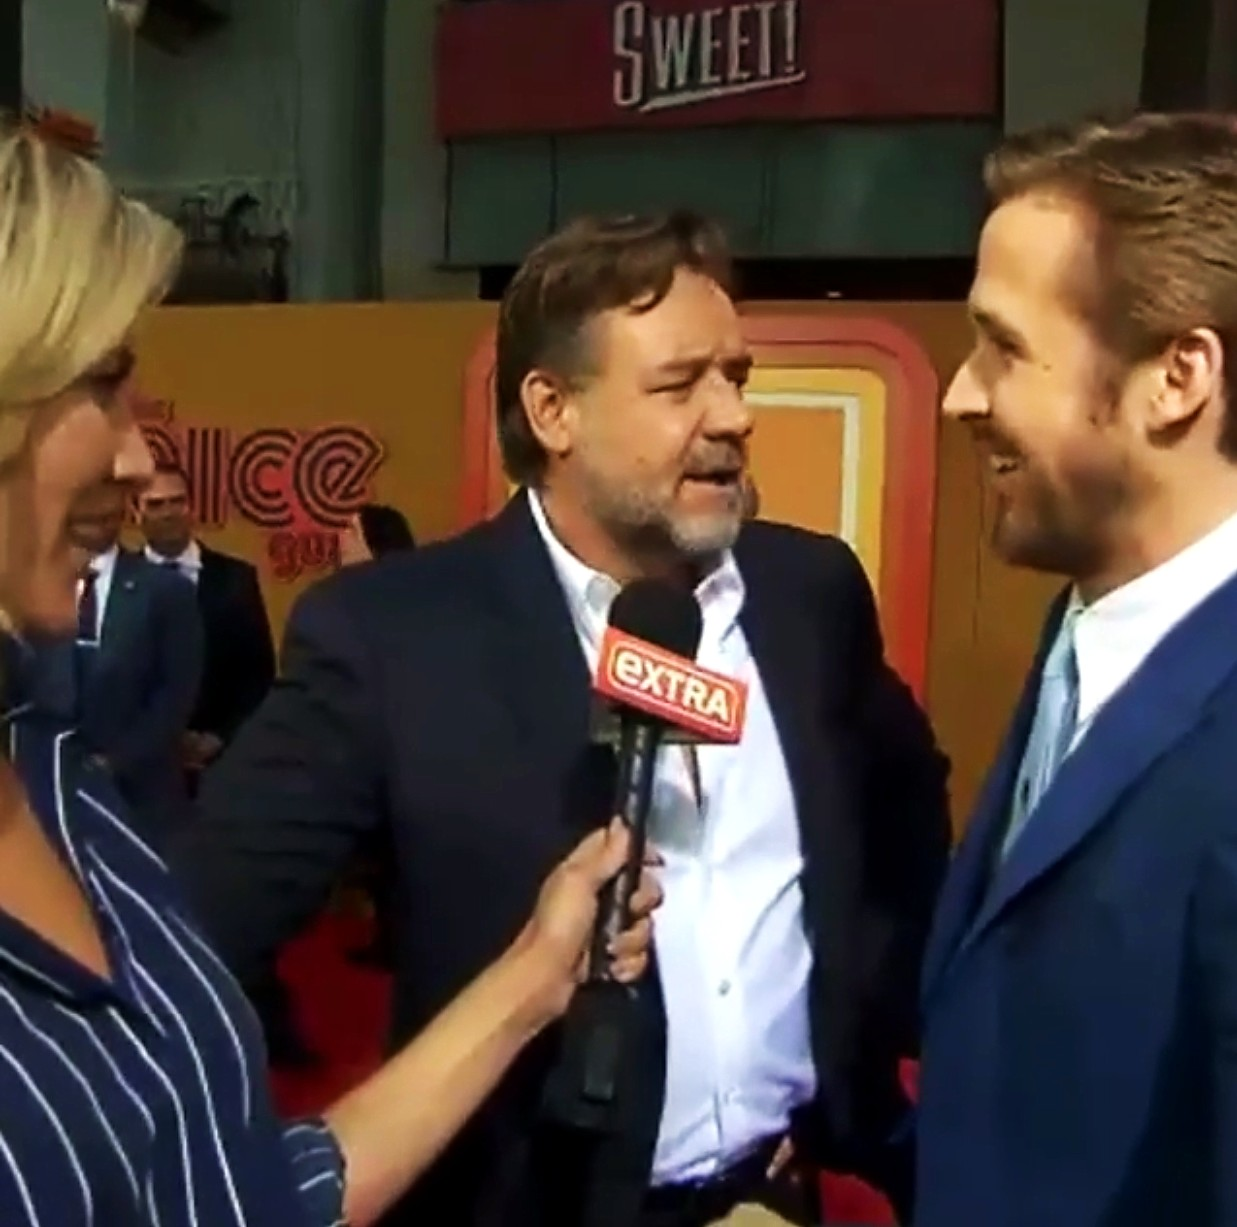 The Nice Guys, movie premiere, Russell Crowe, Ryan Gosling